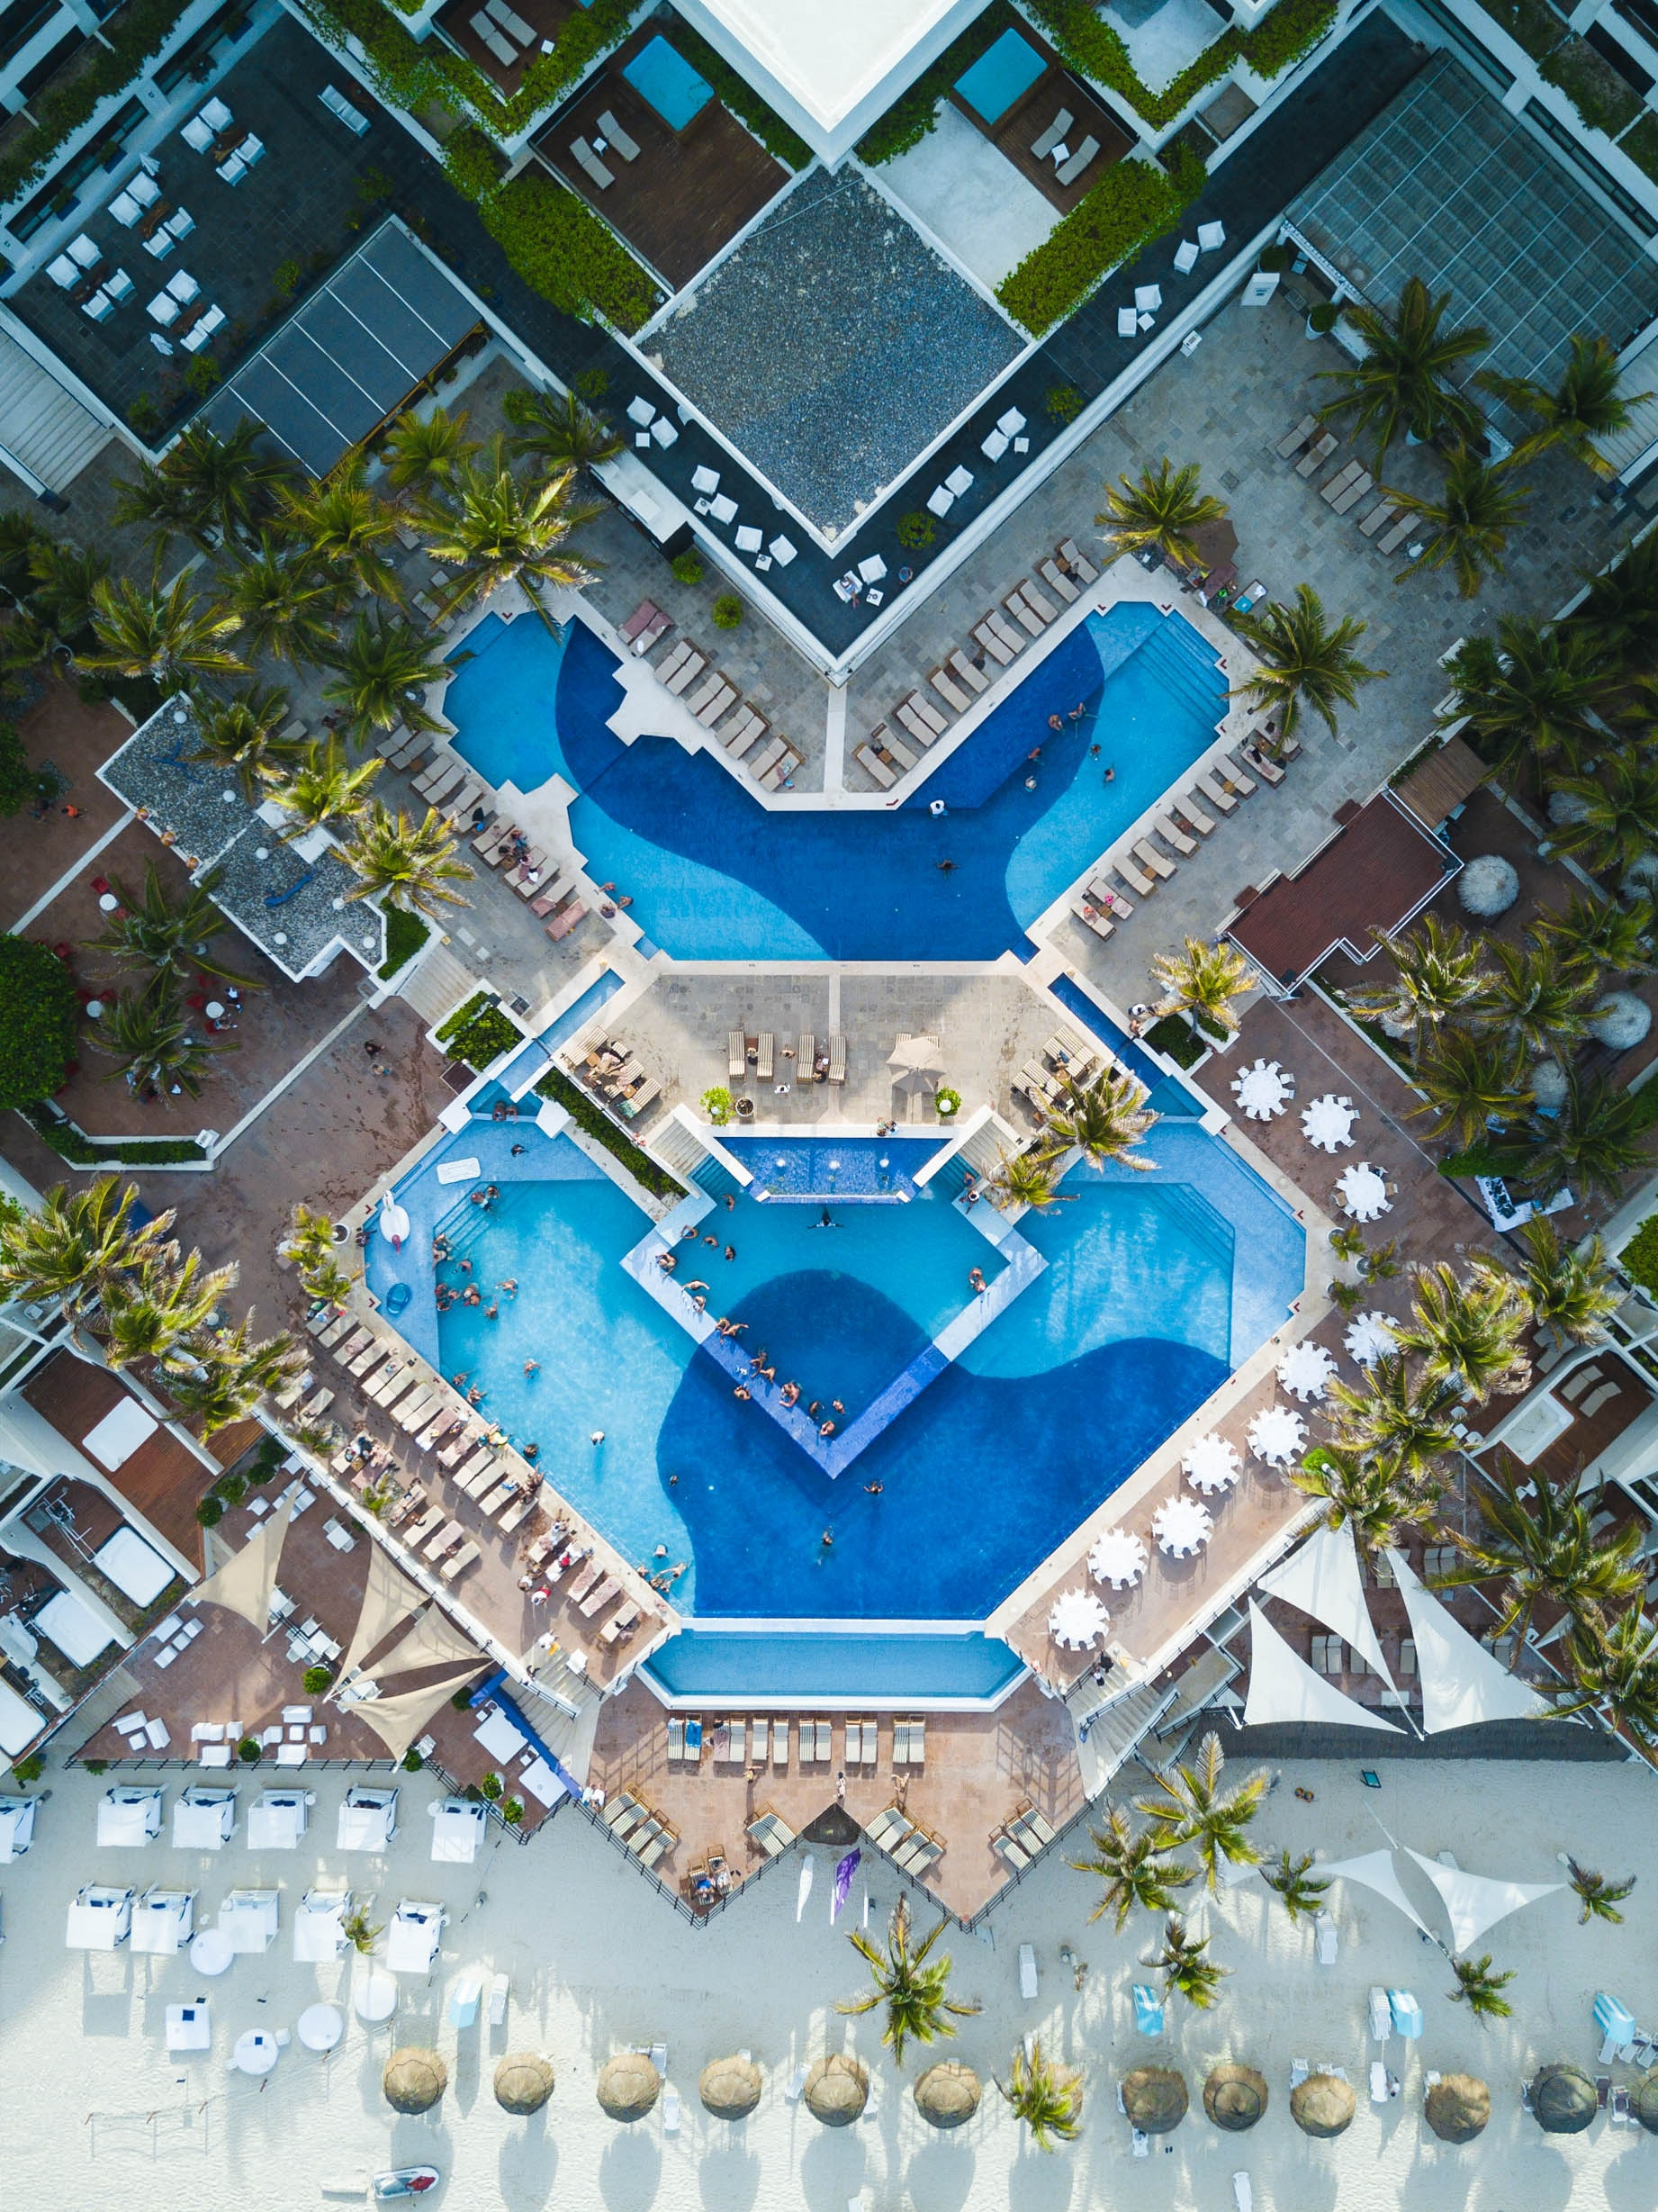 aerial view of swimming pool